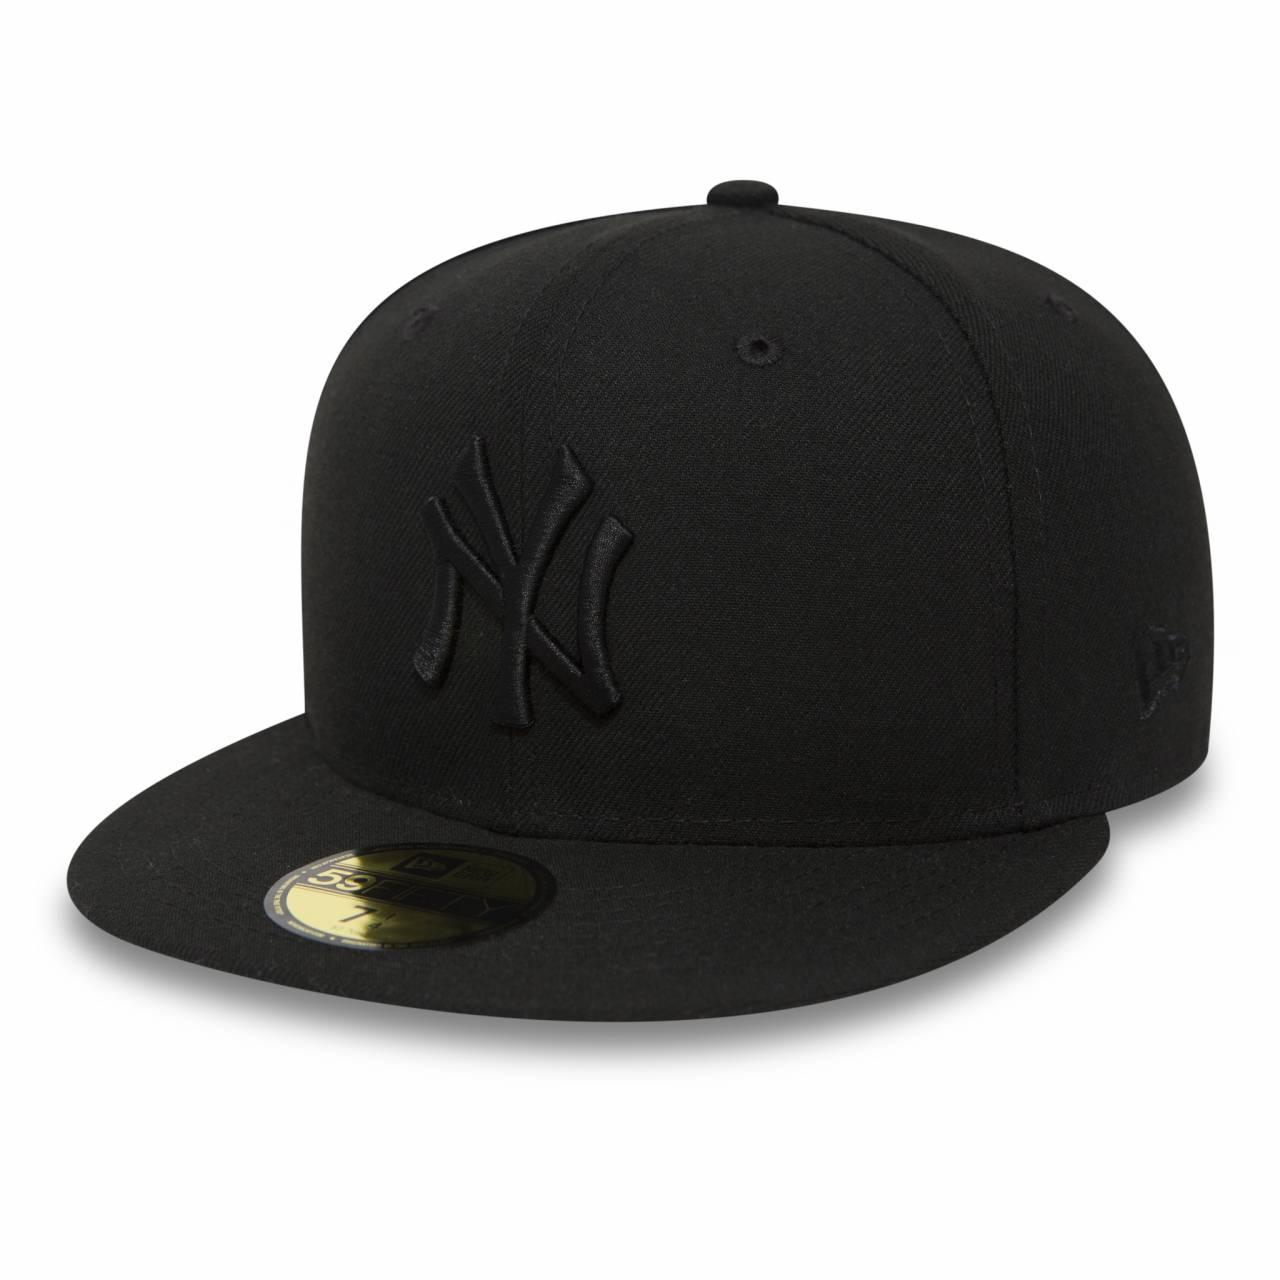 10000103 59FIFTY MLB NEW YORK YANKEES FITTED CAP BLACK\BLACK